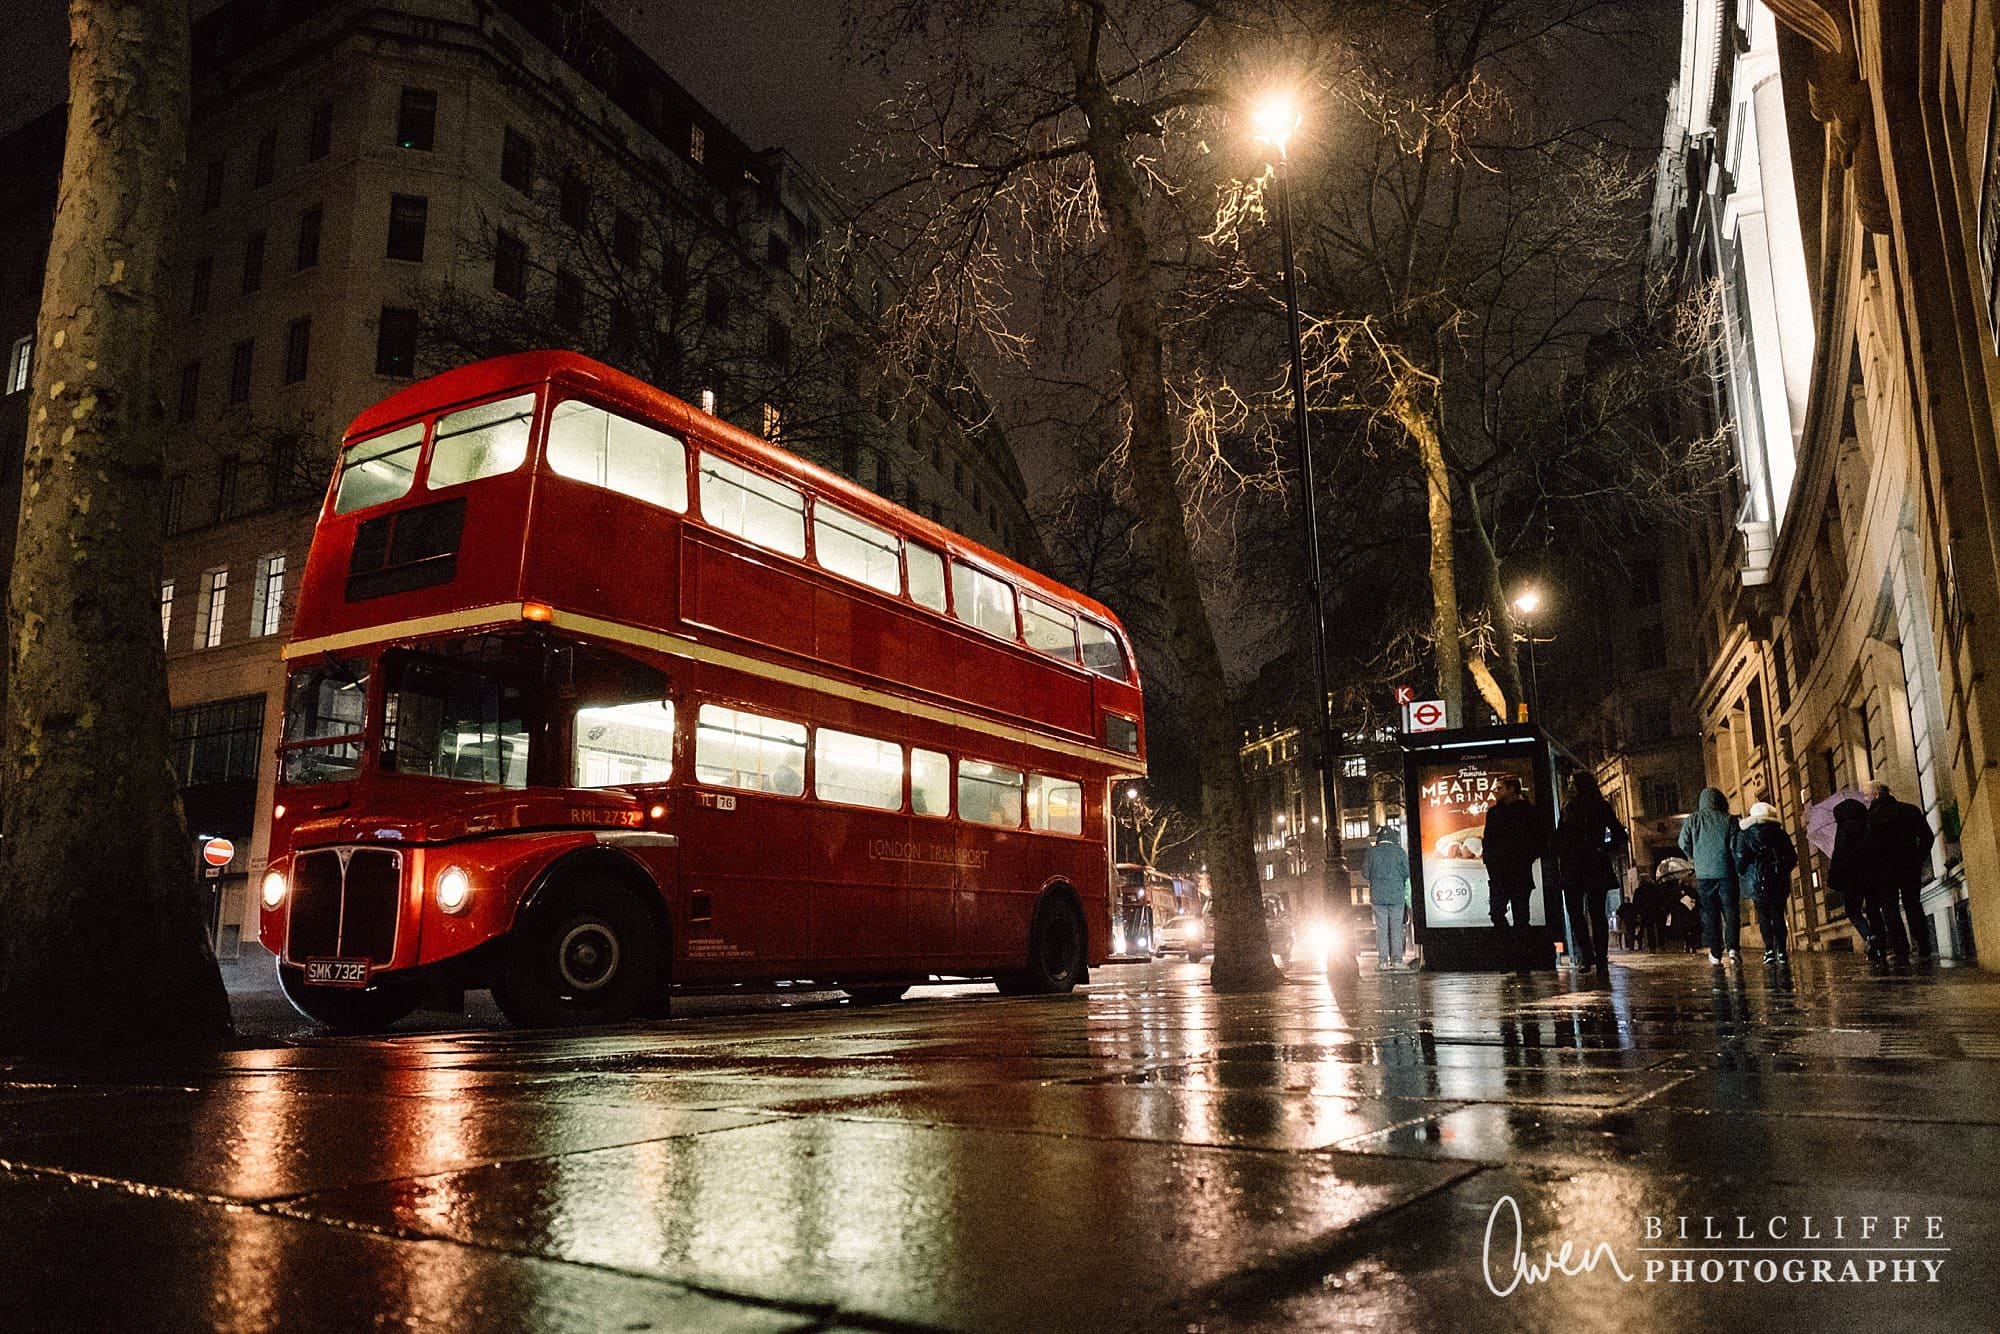 london engagement proposal photographer routemaster RE 001 - When Richard Proposed To Emma on a London Routemaster Bus